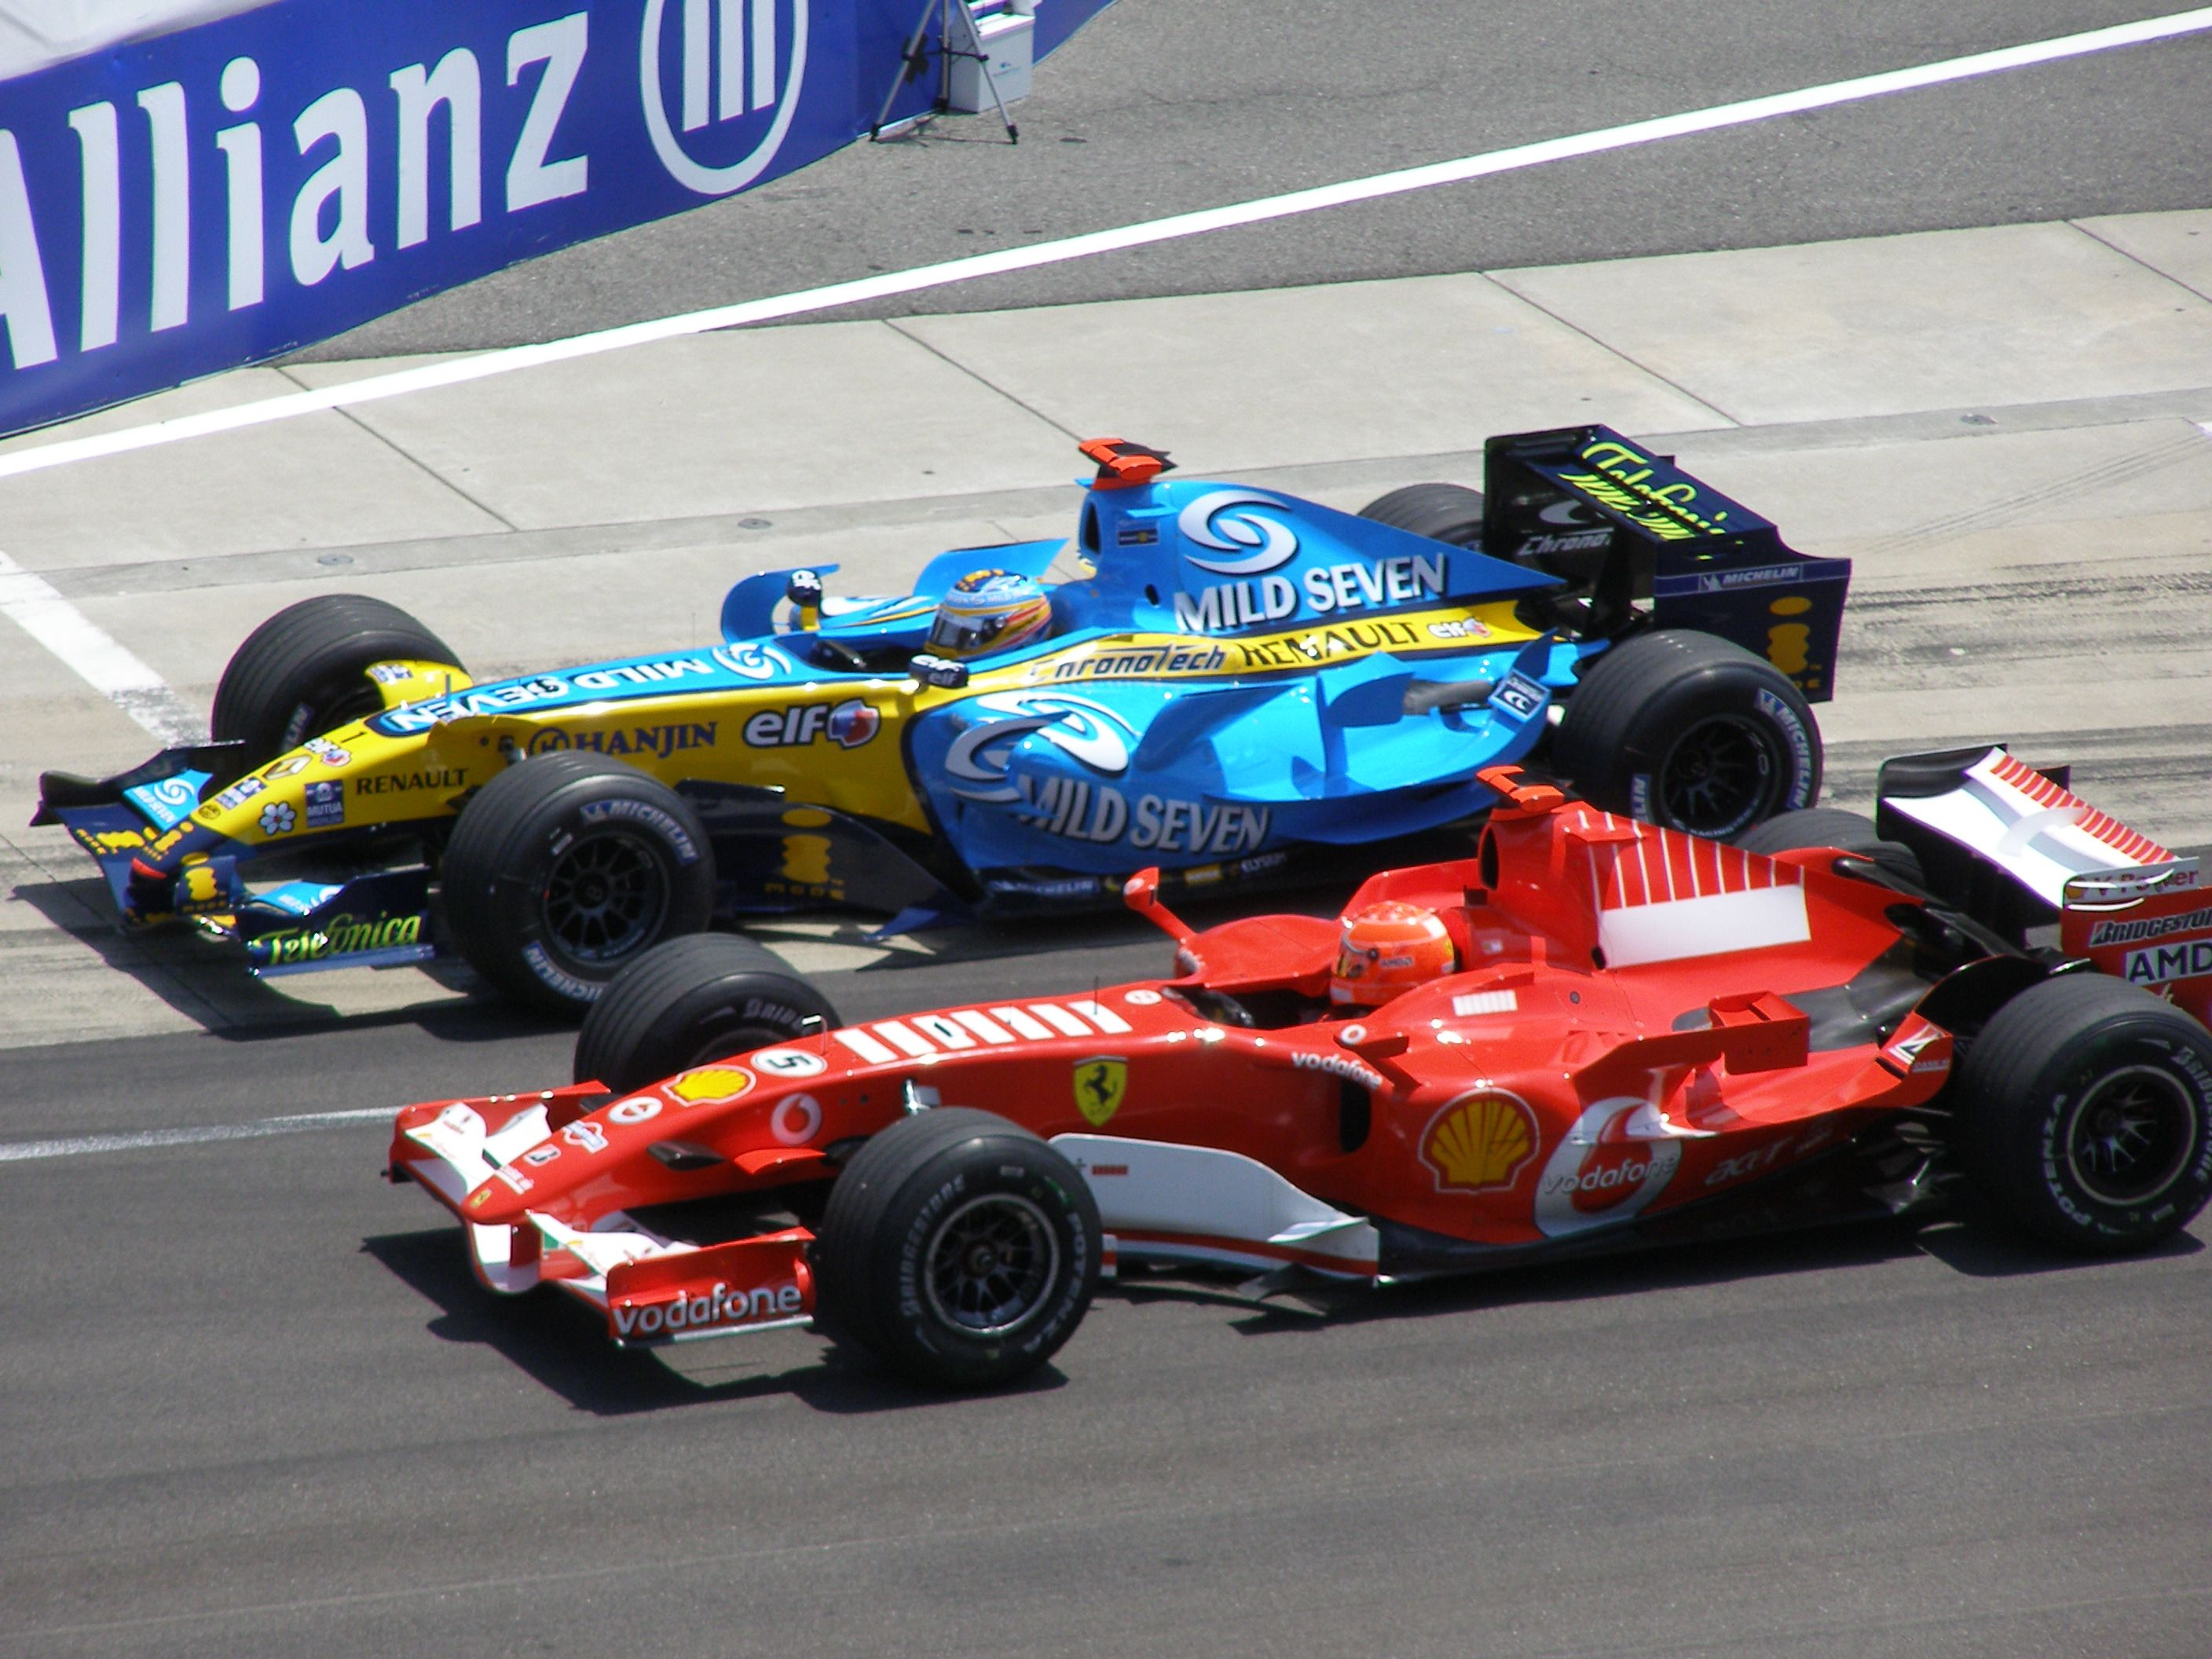 Fernando Alonso In The Renault Vs Michael Schumacher In The Ferrari Coches De Carreras Carreras Autos